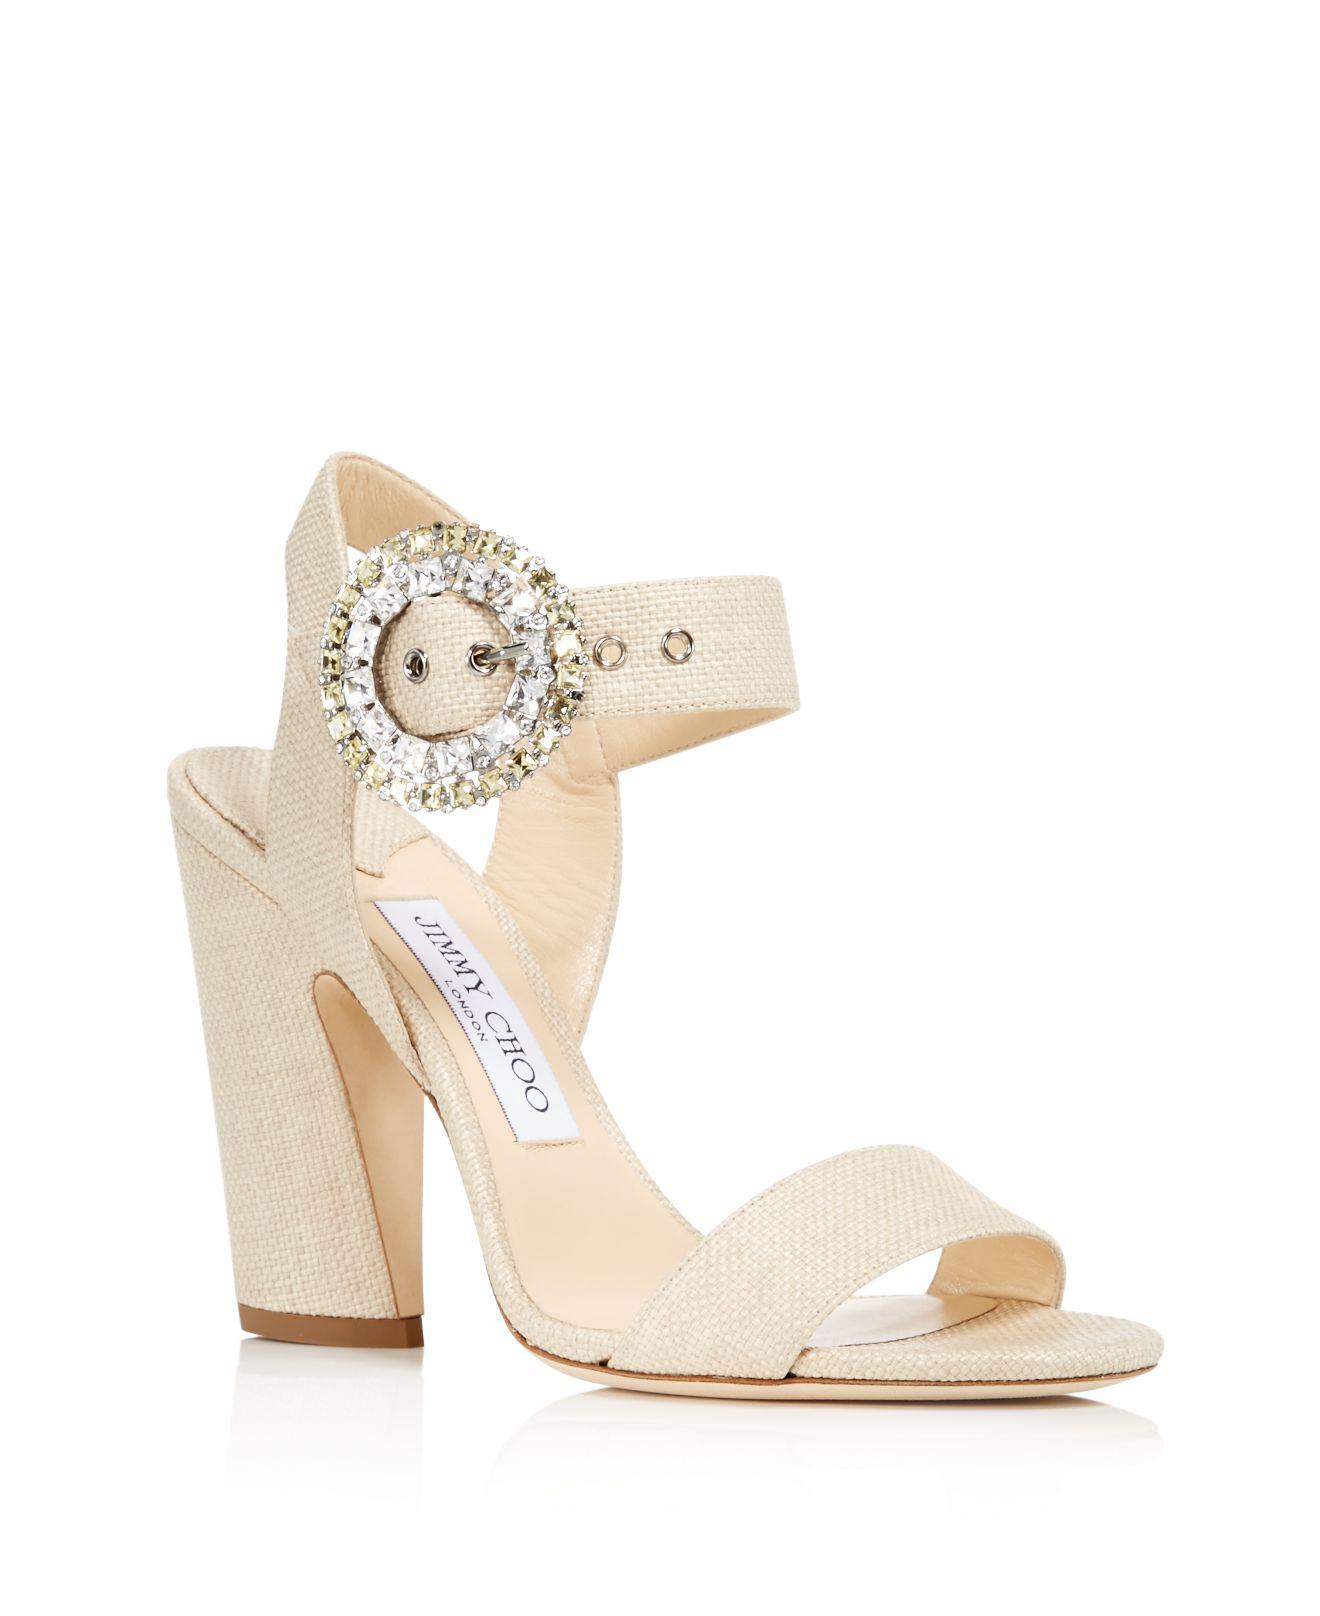 Jimmy choo Women's Mischa 100 Raffia & Leather High-Heel Sandals